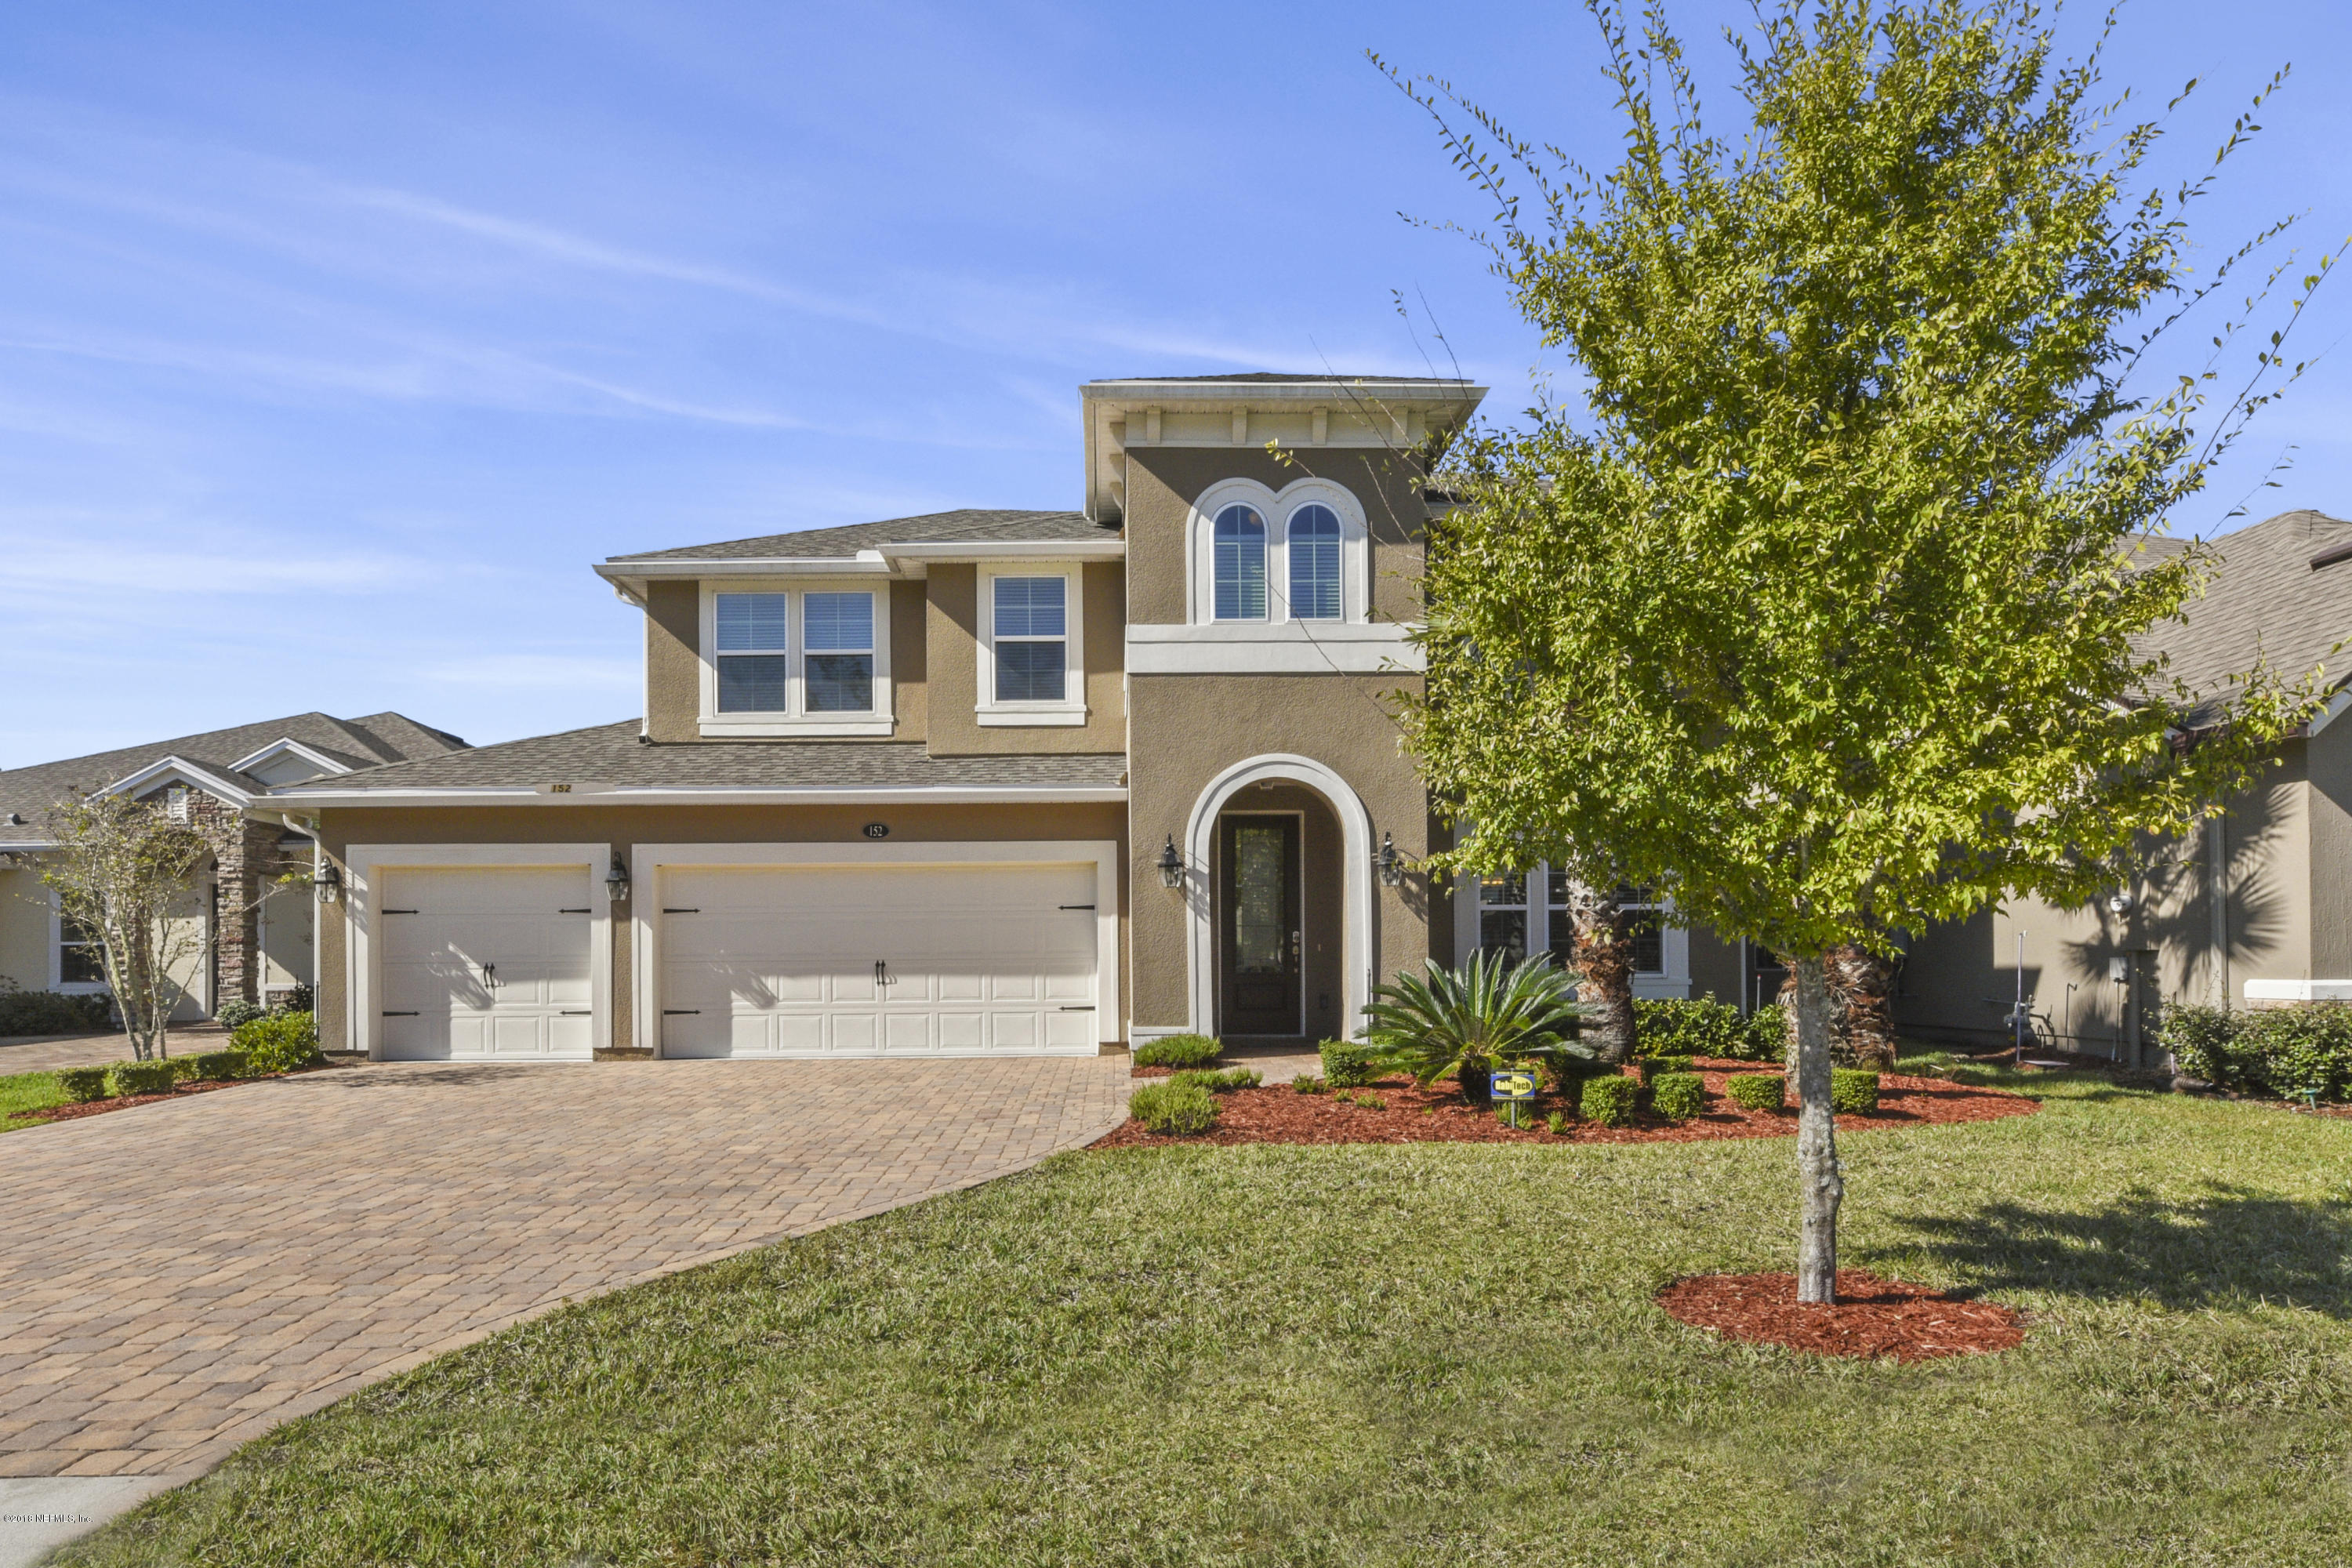 152 STONY FORD, PONTE VEDRA, FLORIDA 32081, 5 Bedrooms Bedrooms, ,4 BathroomsBathrooms,Residential - single family,For sale,STONY FORD,967651